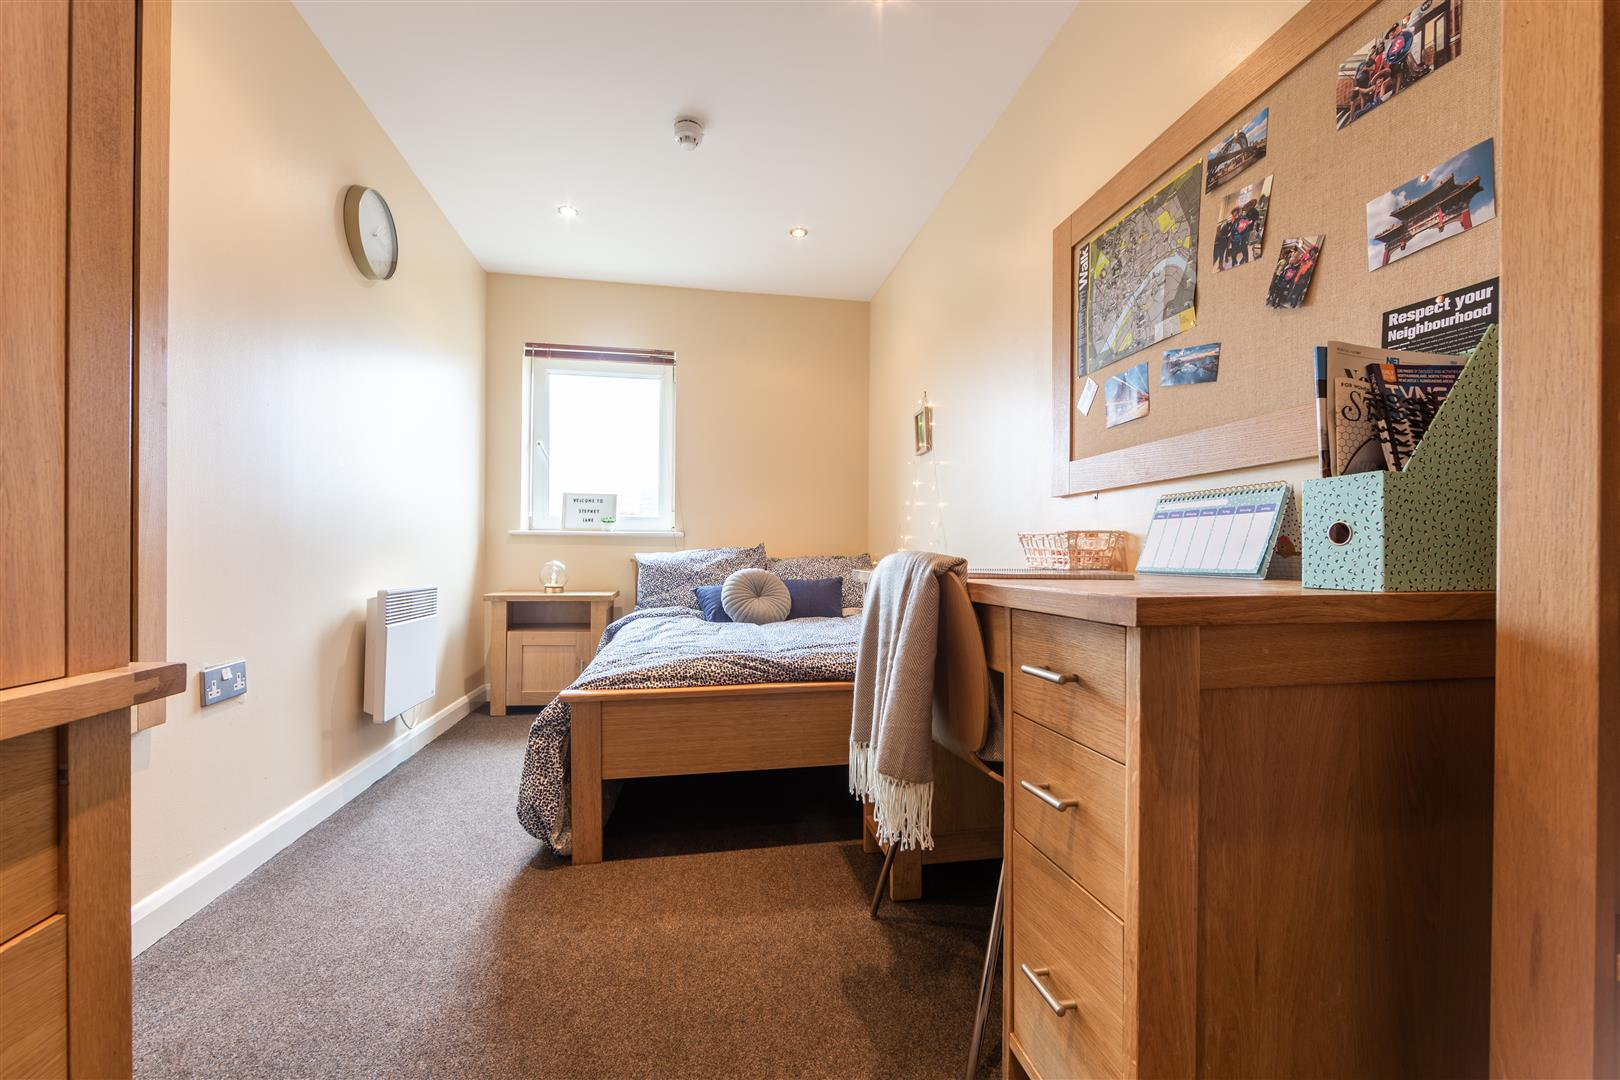 Anolha House Newcastle Upon Tyne, 6 Bedrooms  Flat - purpose built ,To Let